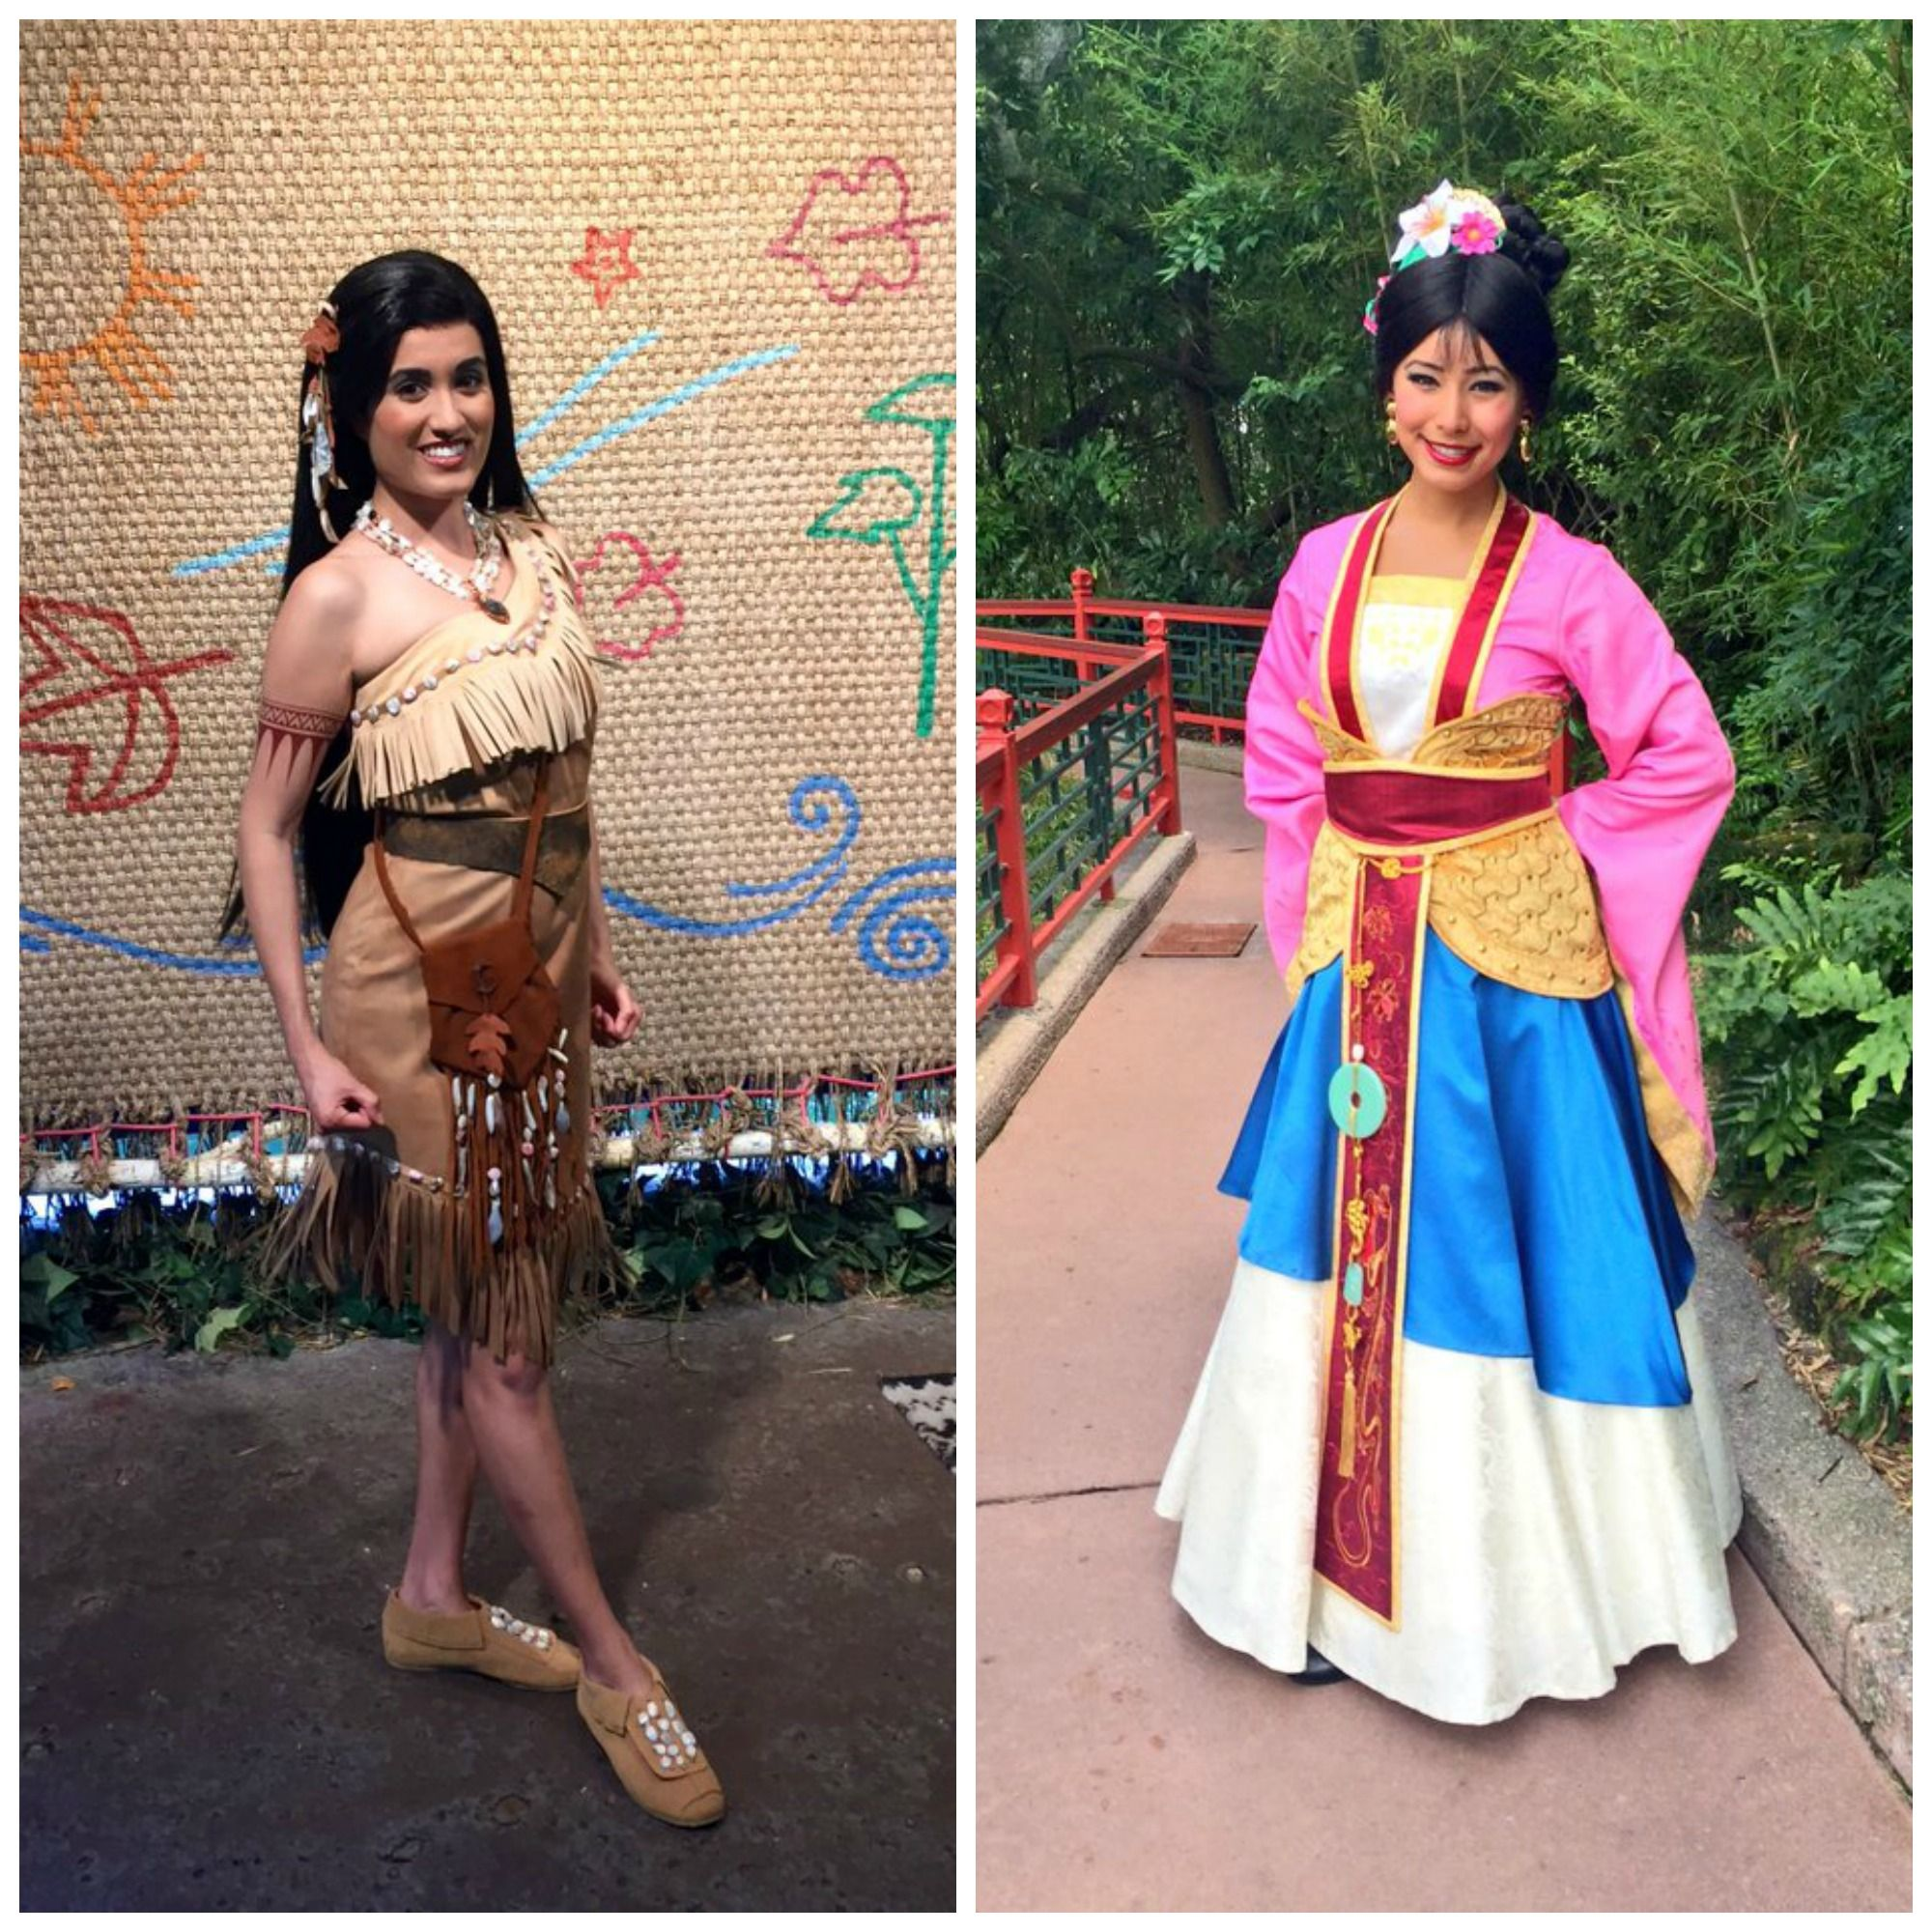 Forced to wear dresses at disneyland stories - New Look For Pocahontus And Mulan At Walt Disney World